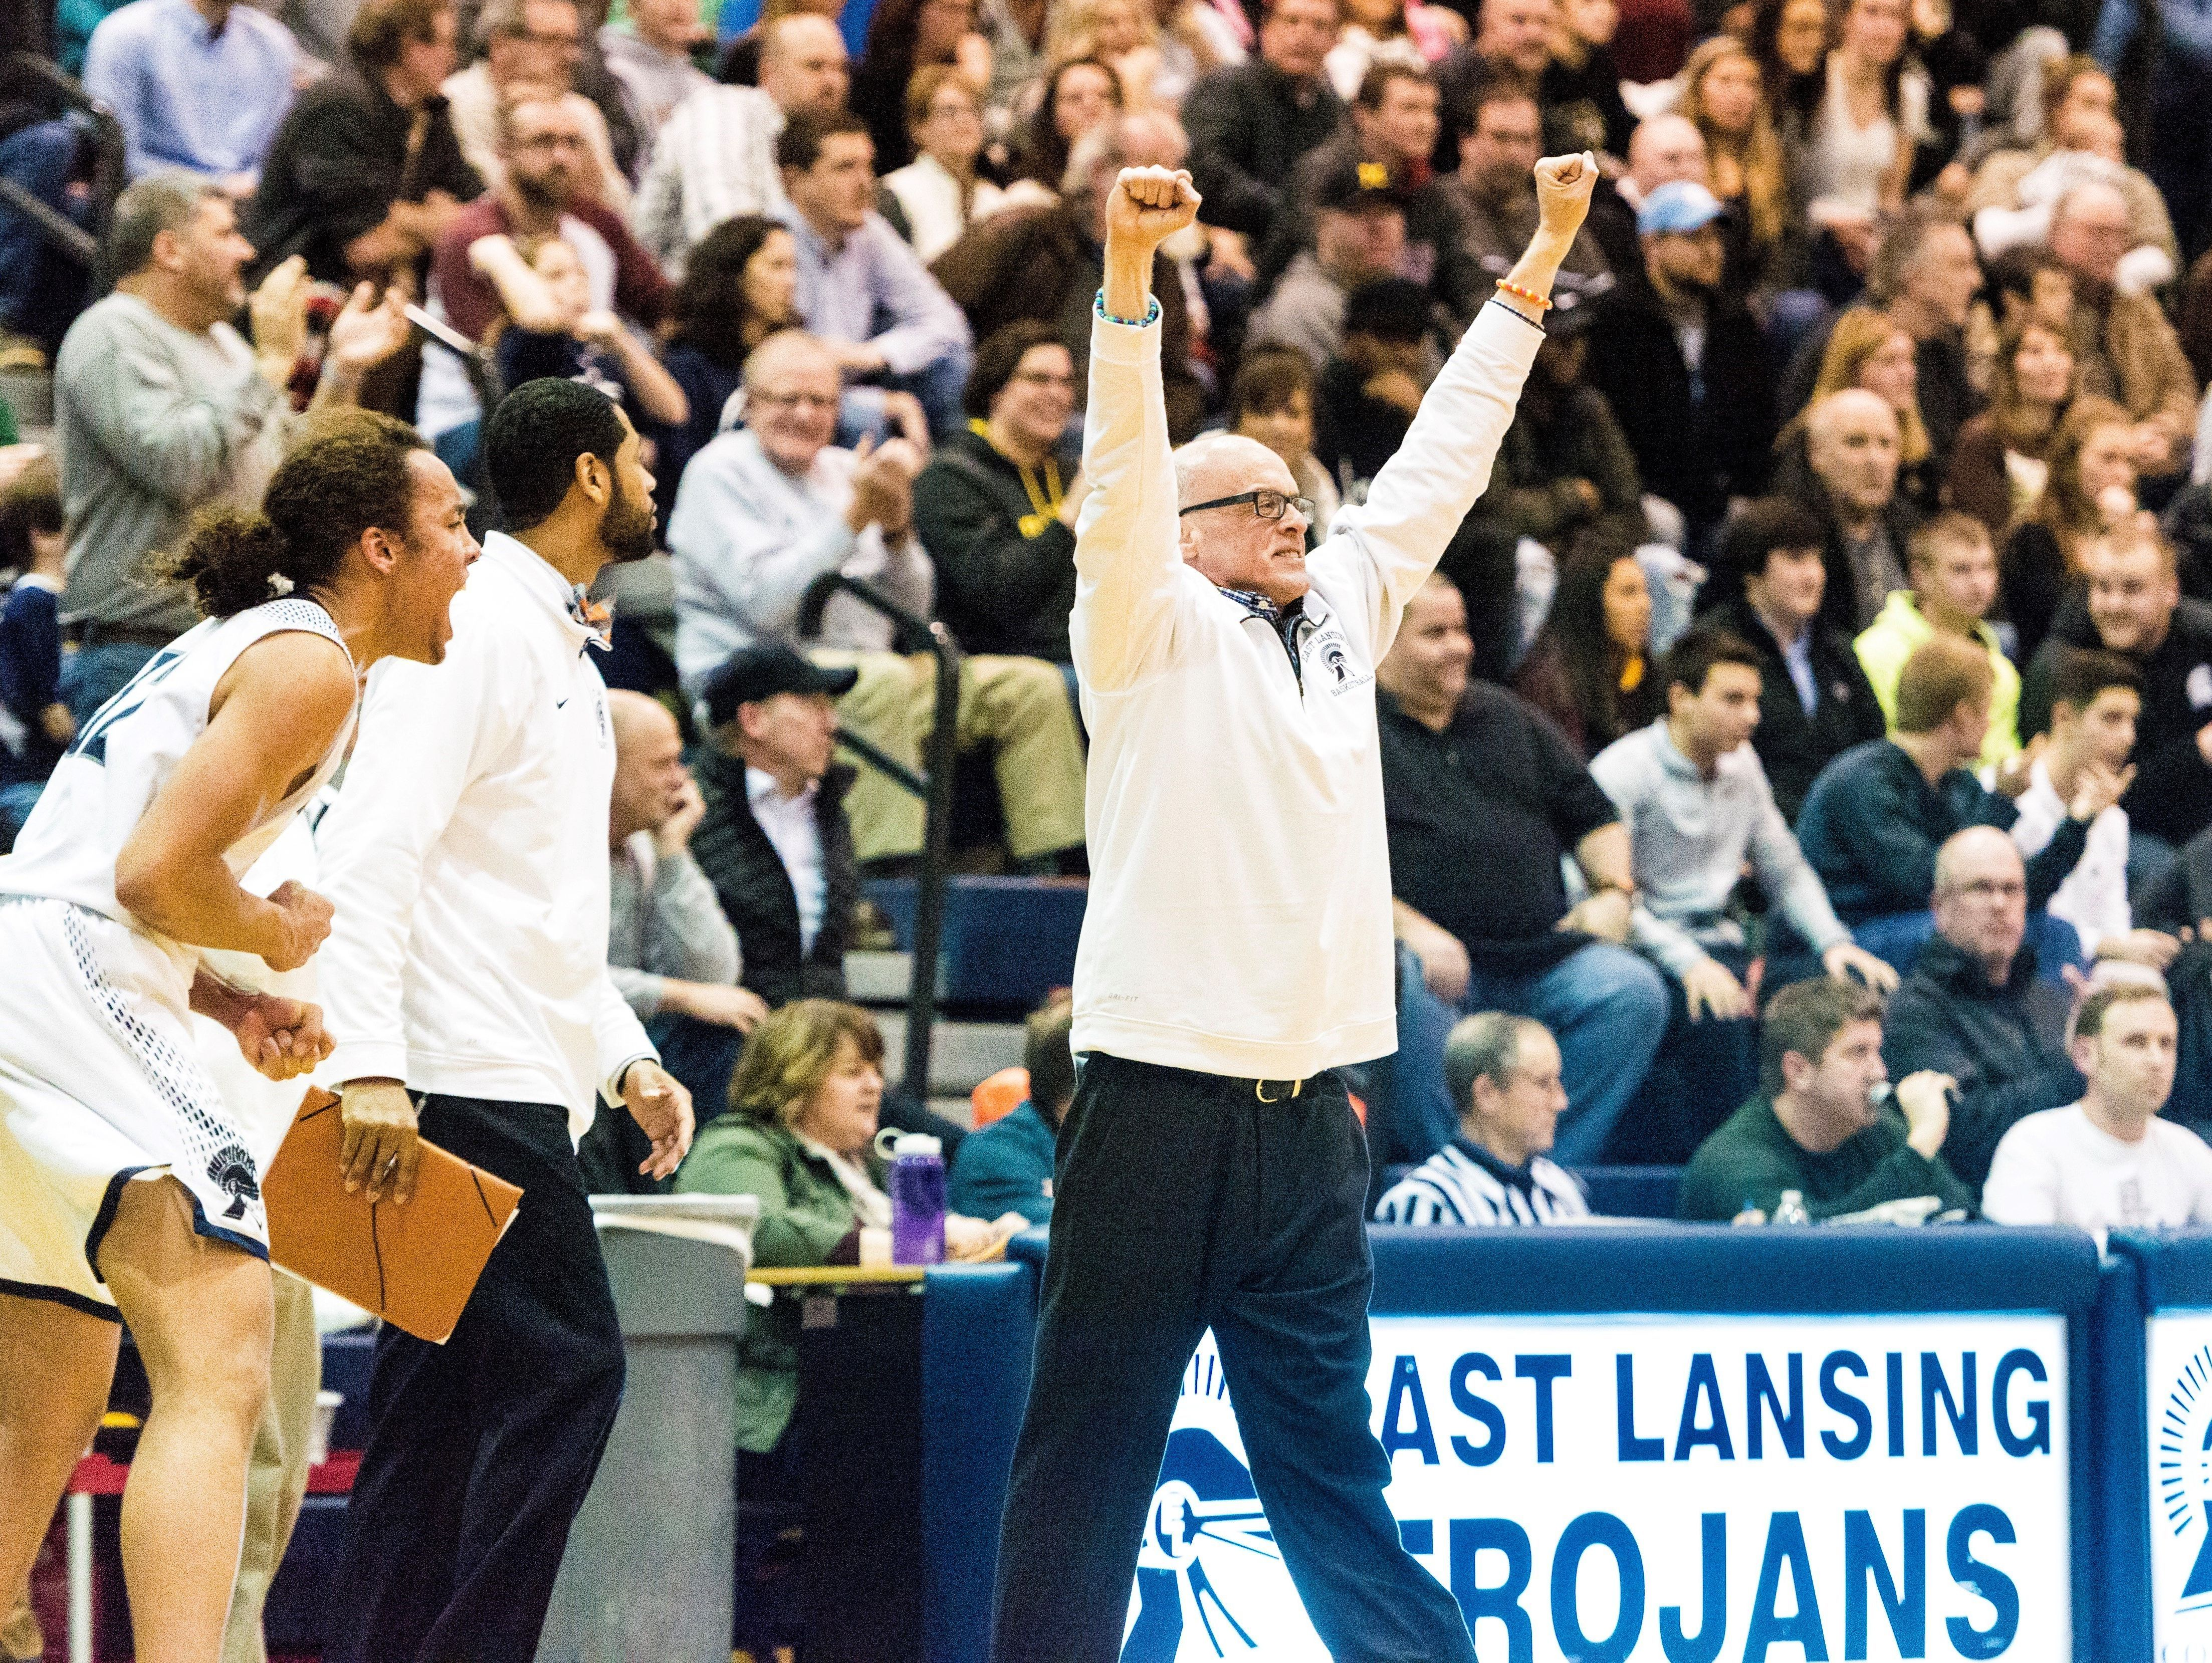 East Lansing coach Steve Finamore celebrates after a Brandon Johns dunk gave his team a 67-63 lead with 21 seconds left in a game against Holt on Jan. 13 in East Lansing.